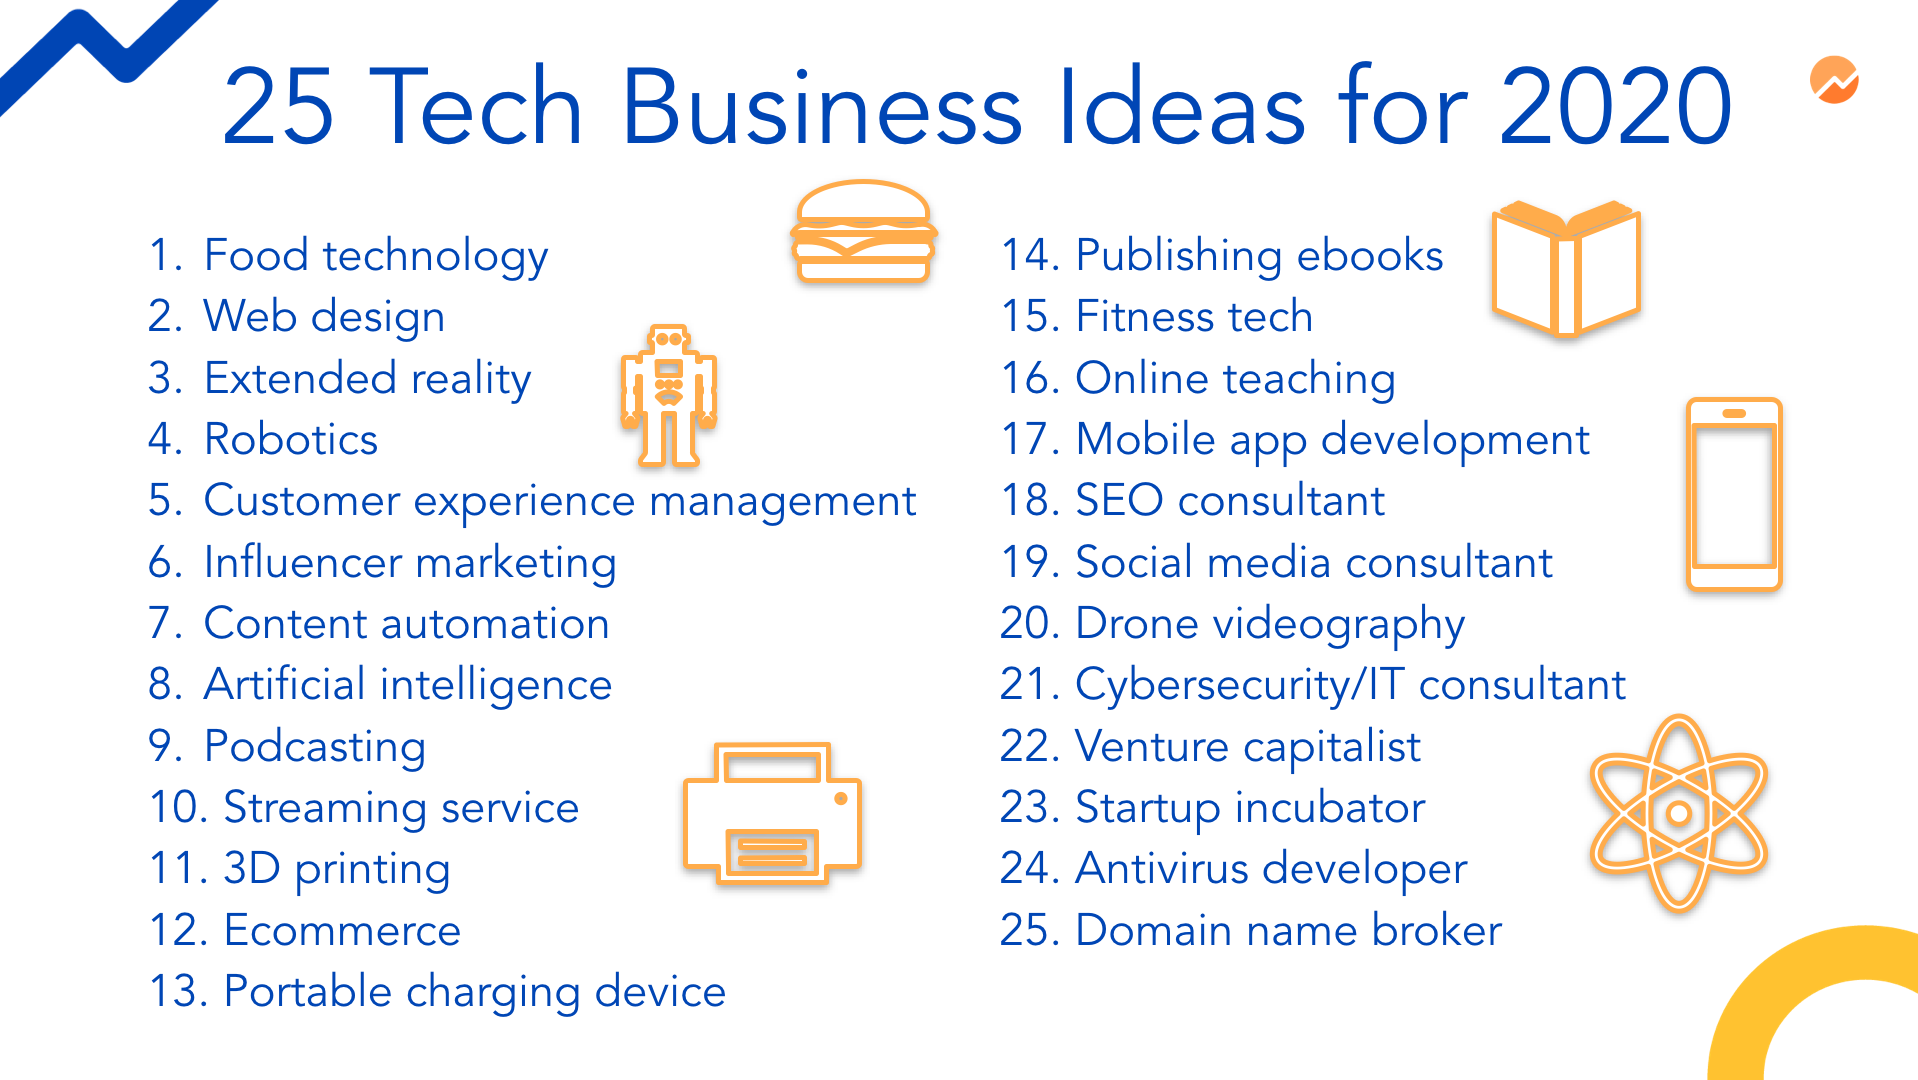 The 25 Best Tech Business Ideas For 2020